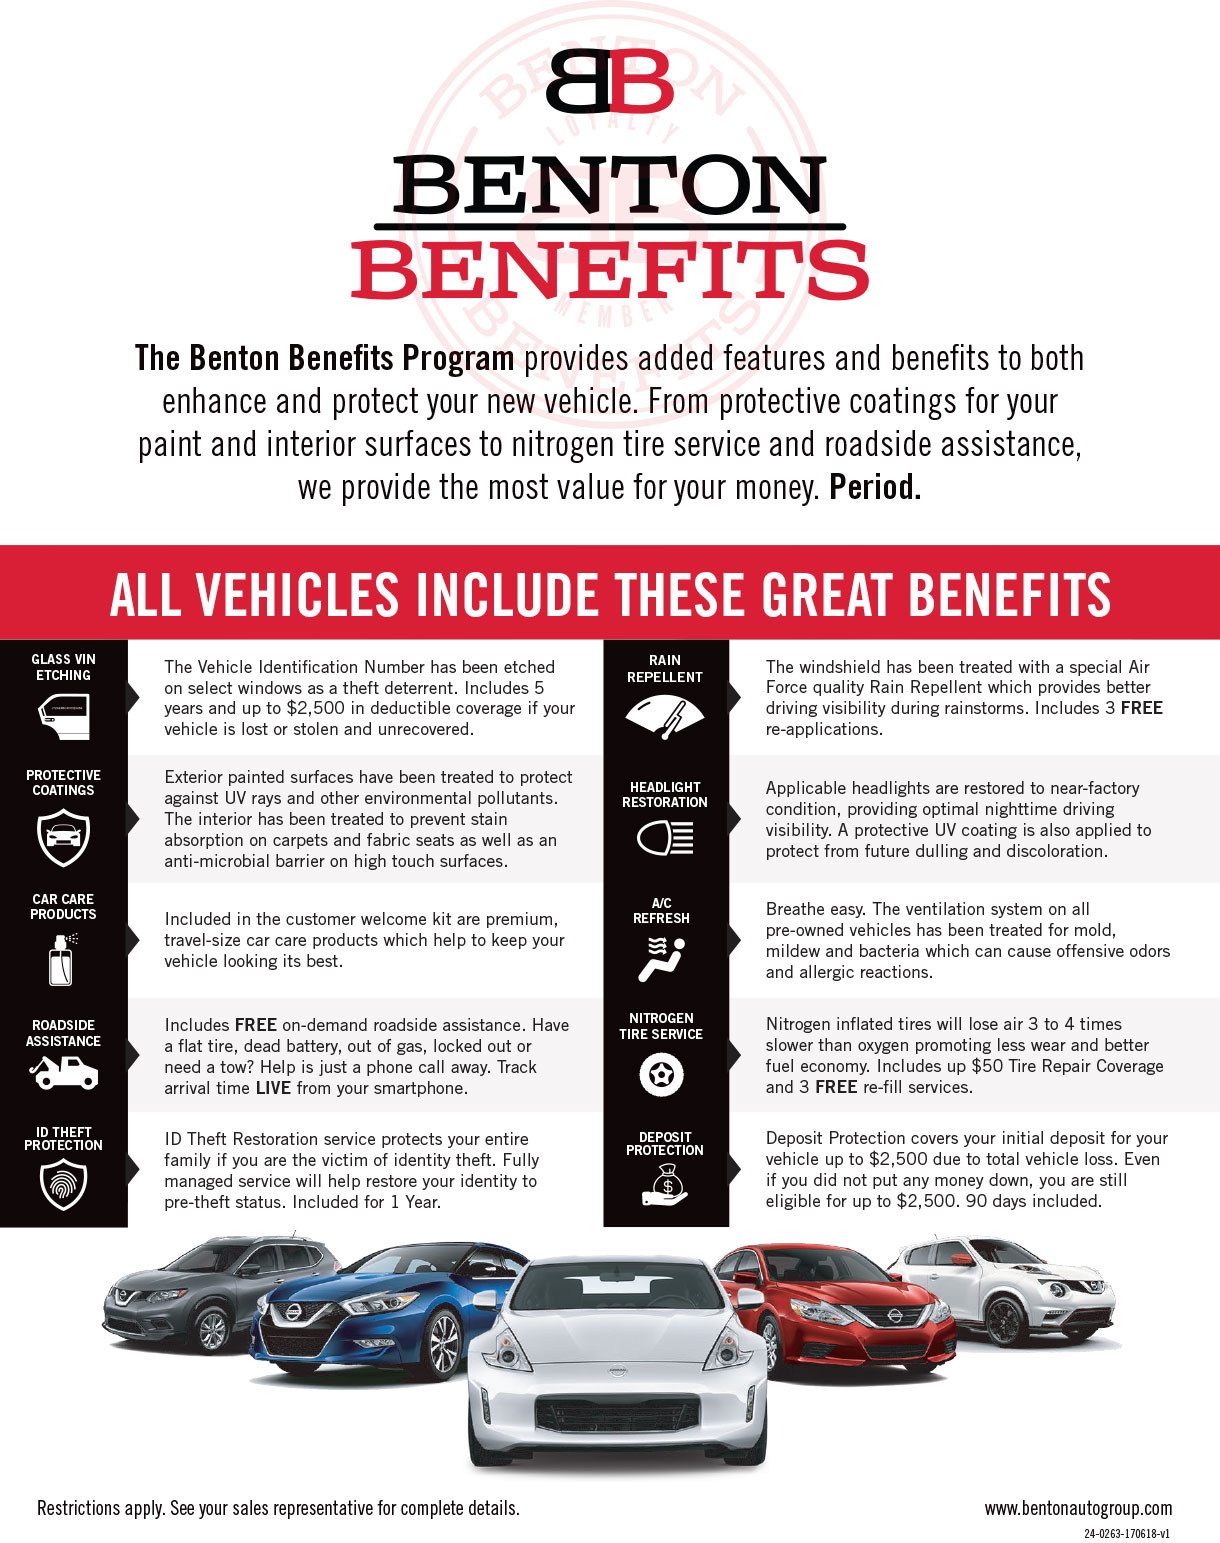 Provides added features and benefits to both enhance and protect your new vehicle.